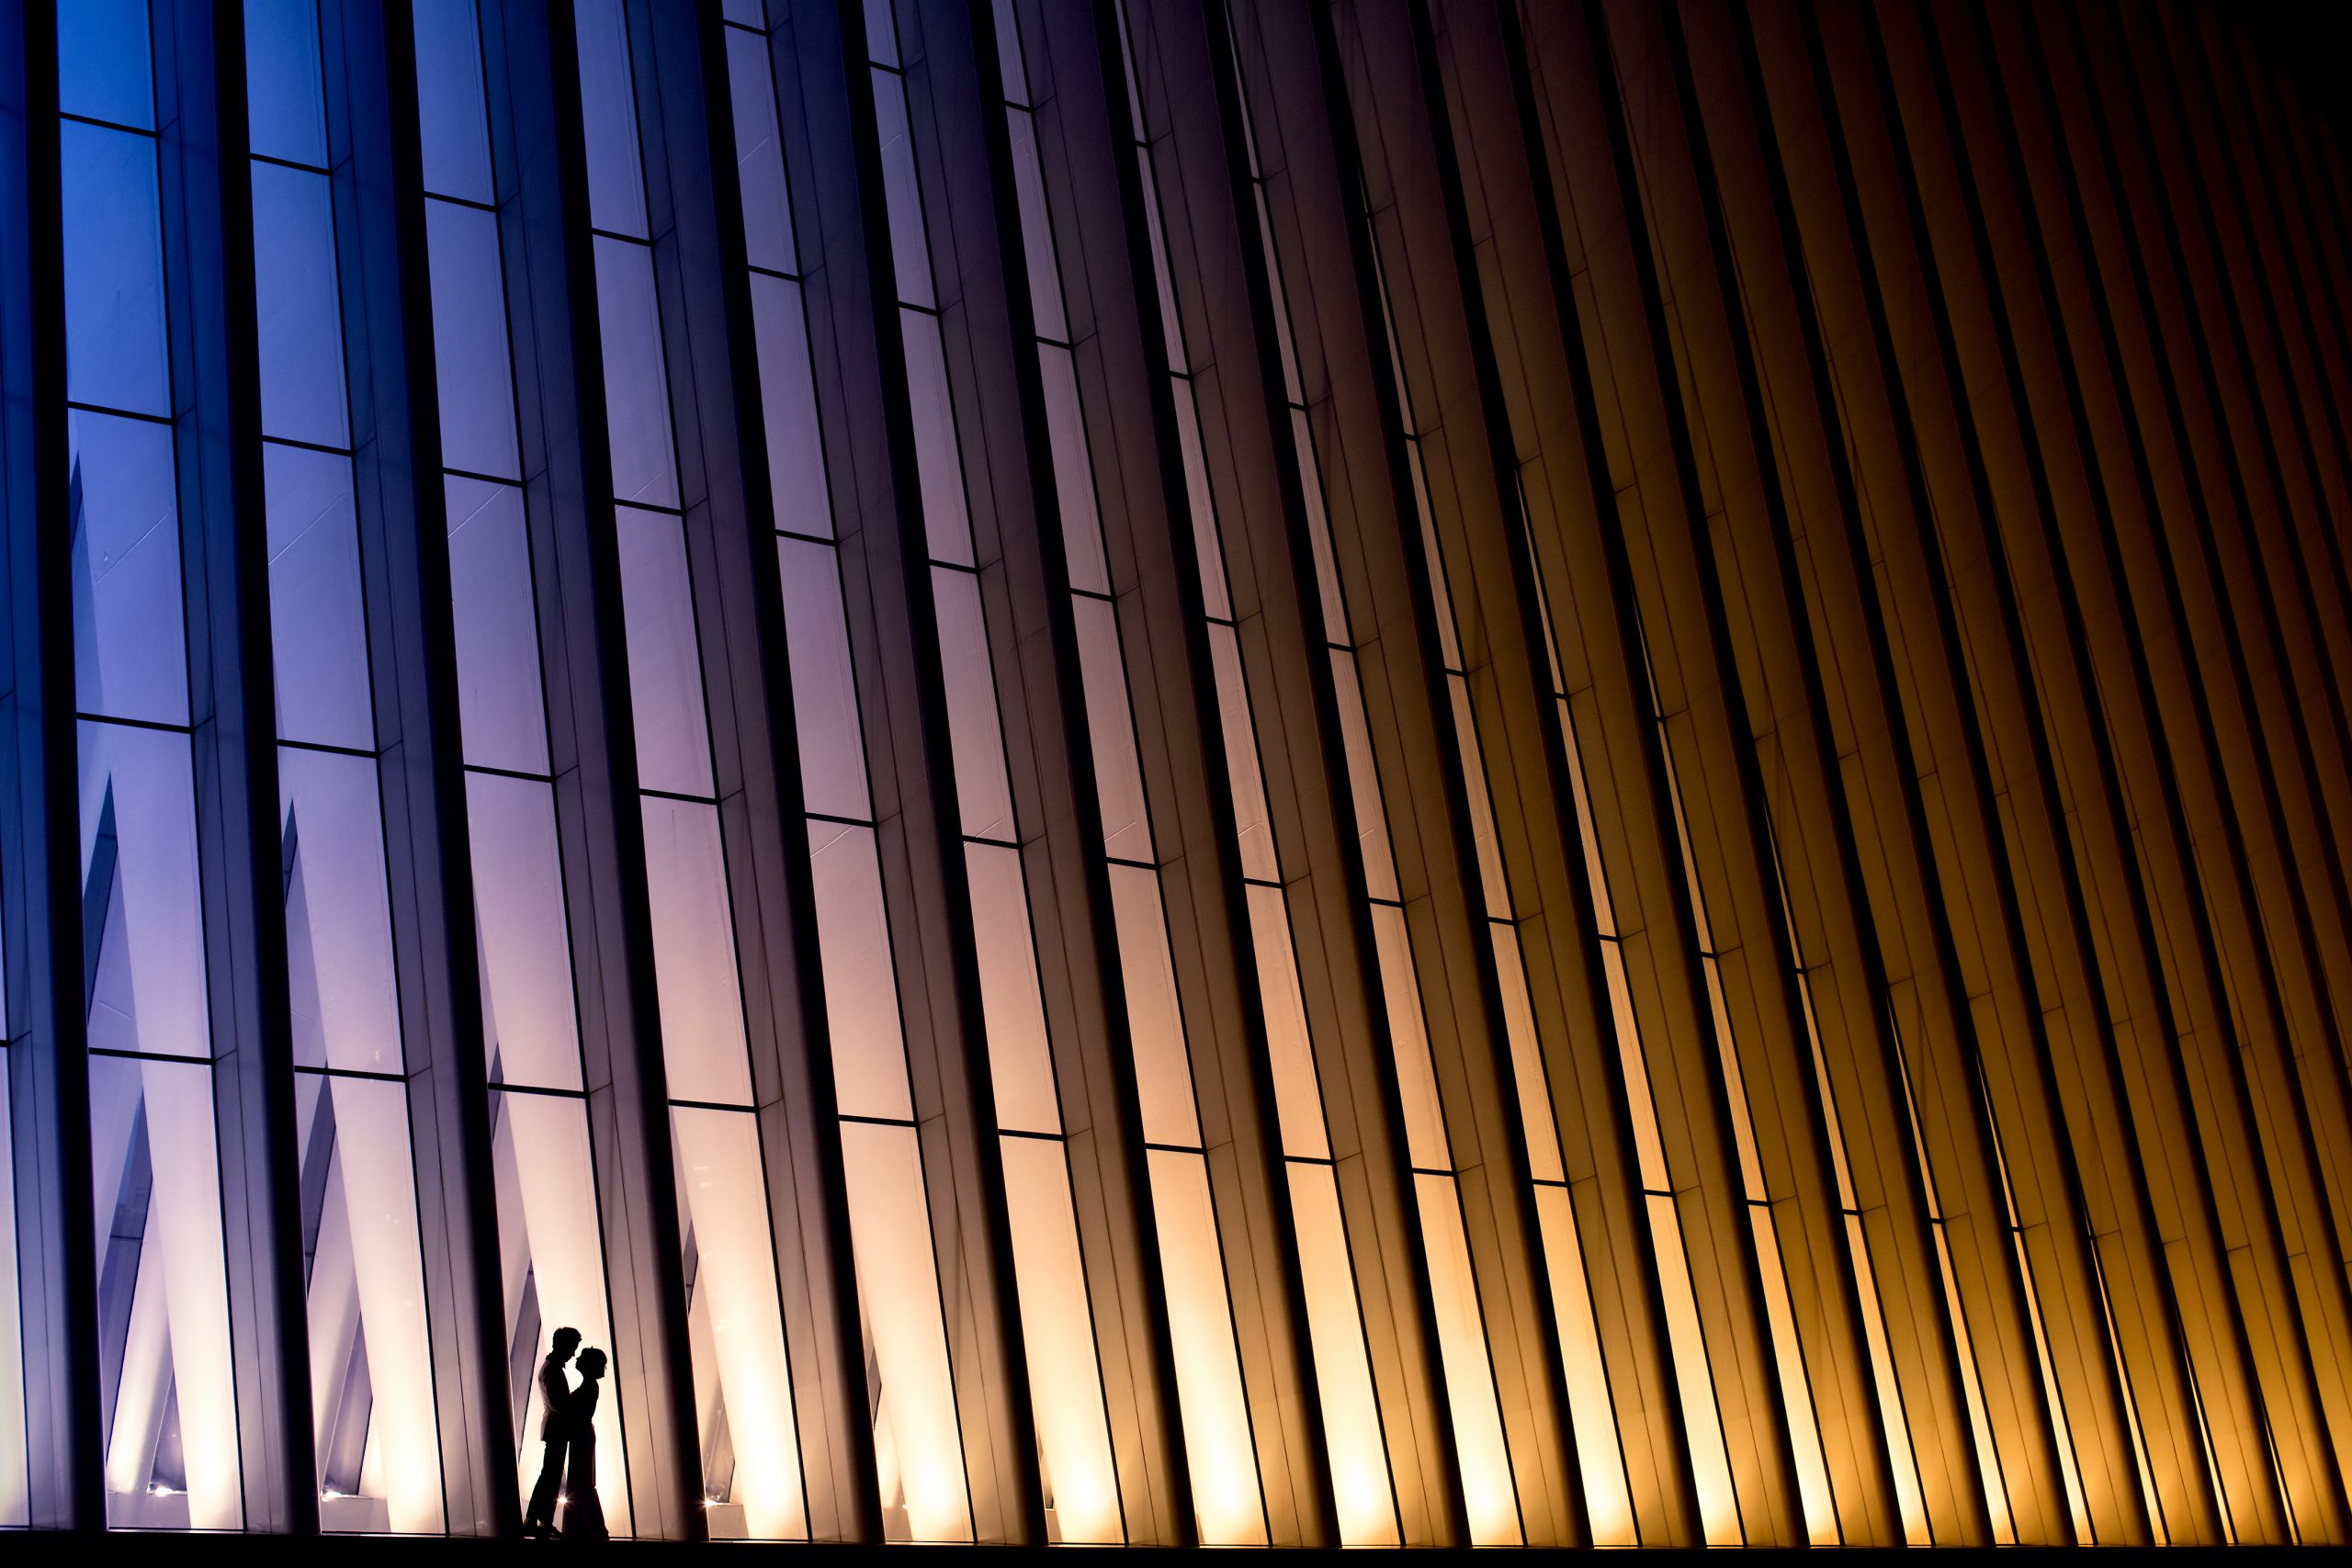 Silhouette of bride and groom in front of architecture in Brooklyn, New York